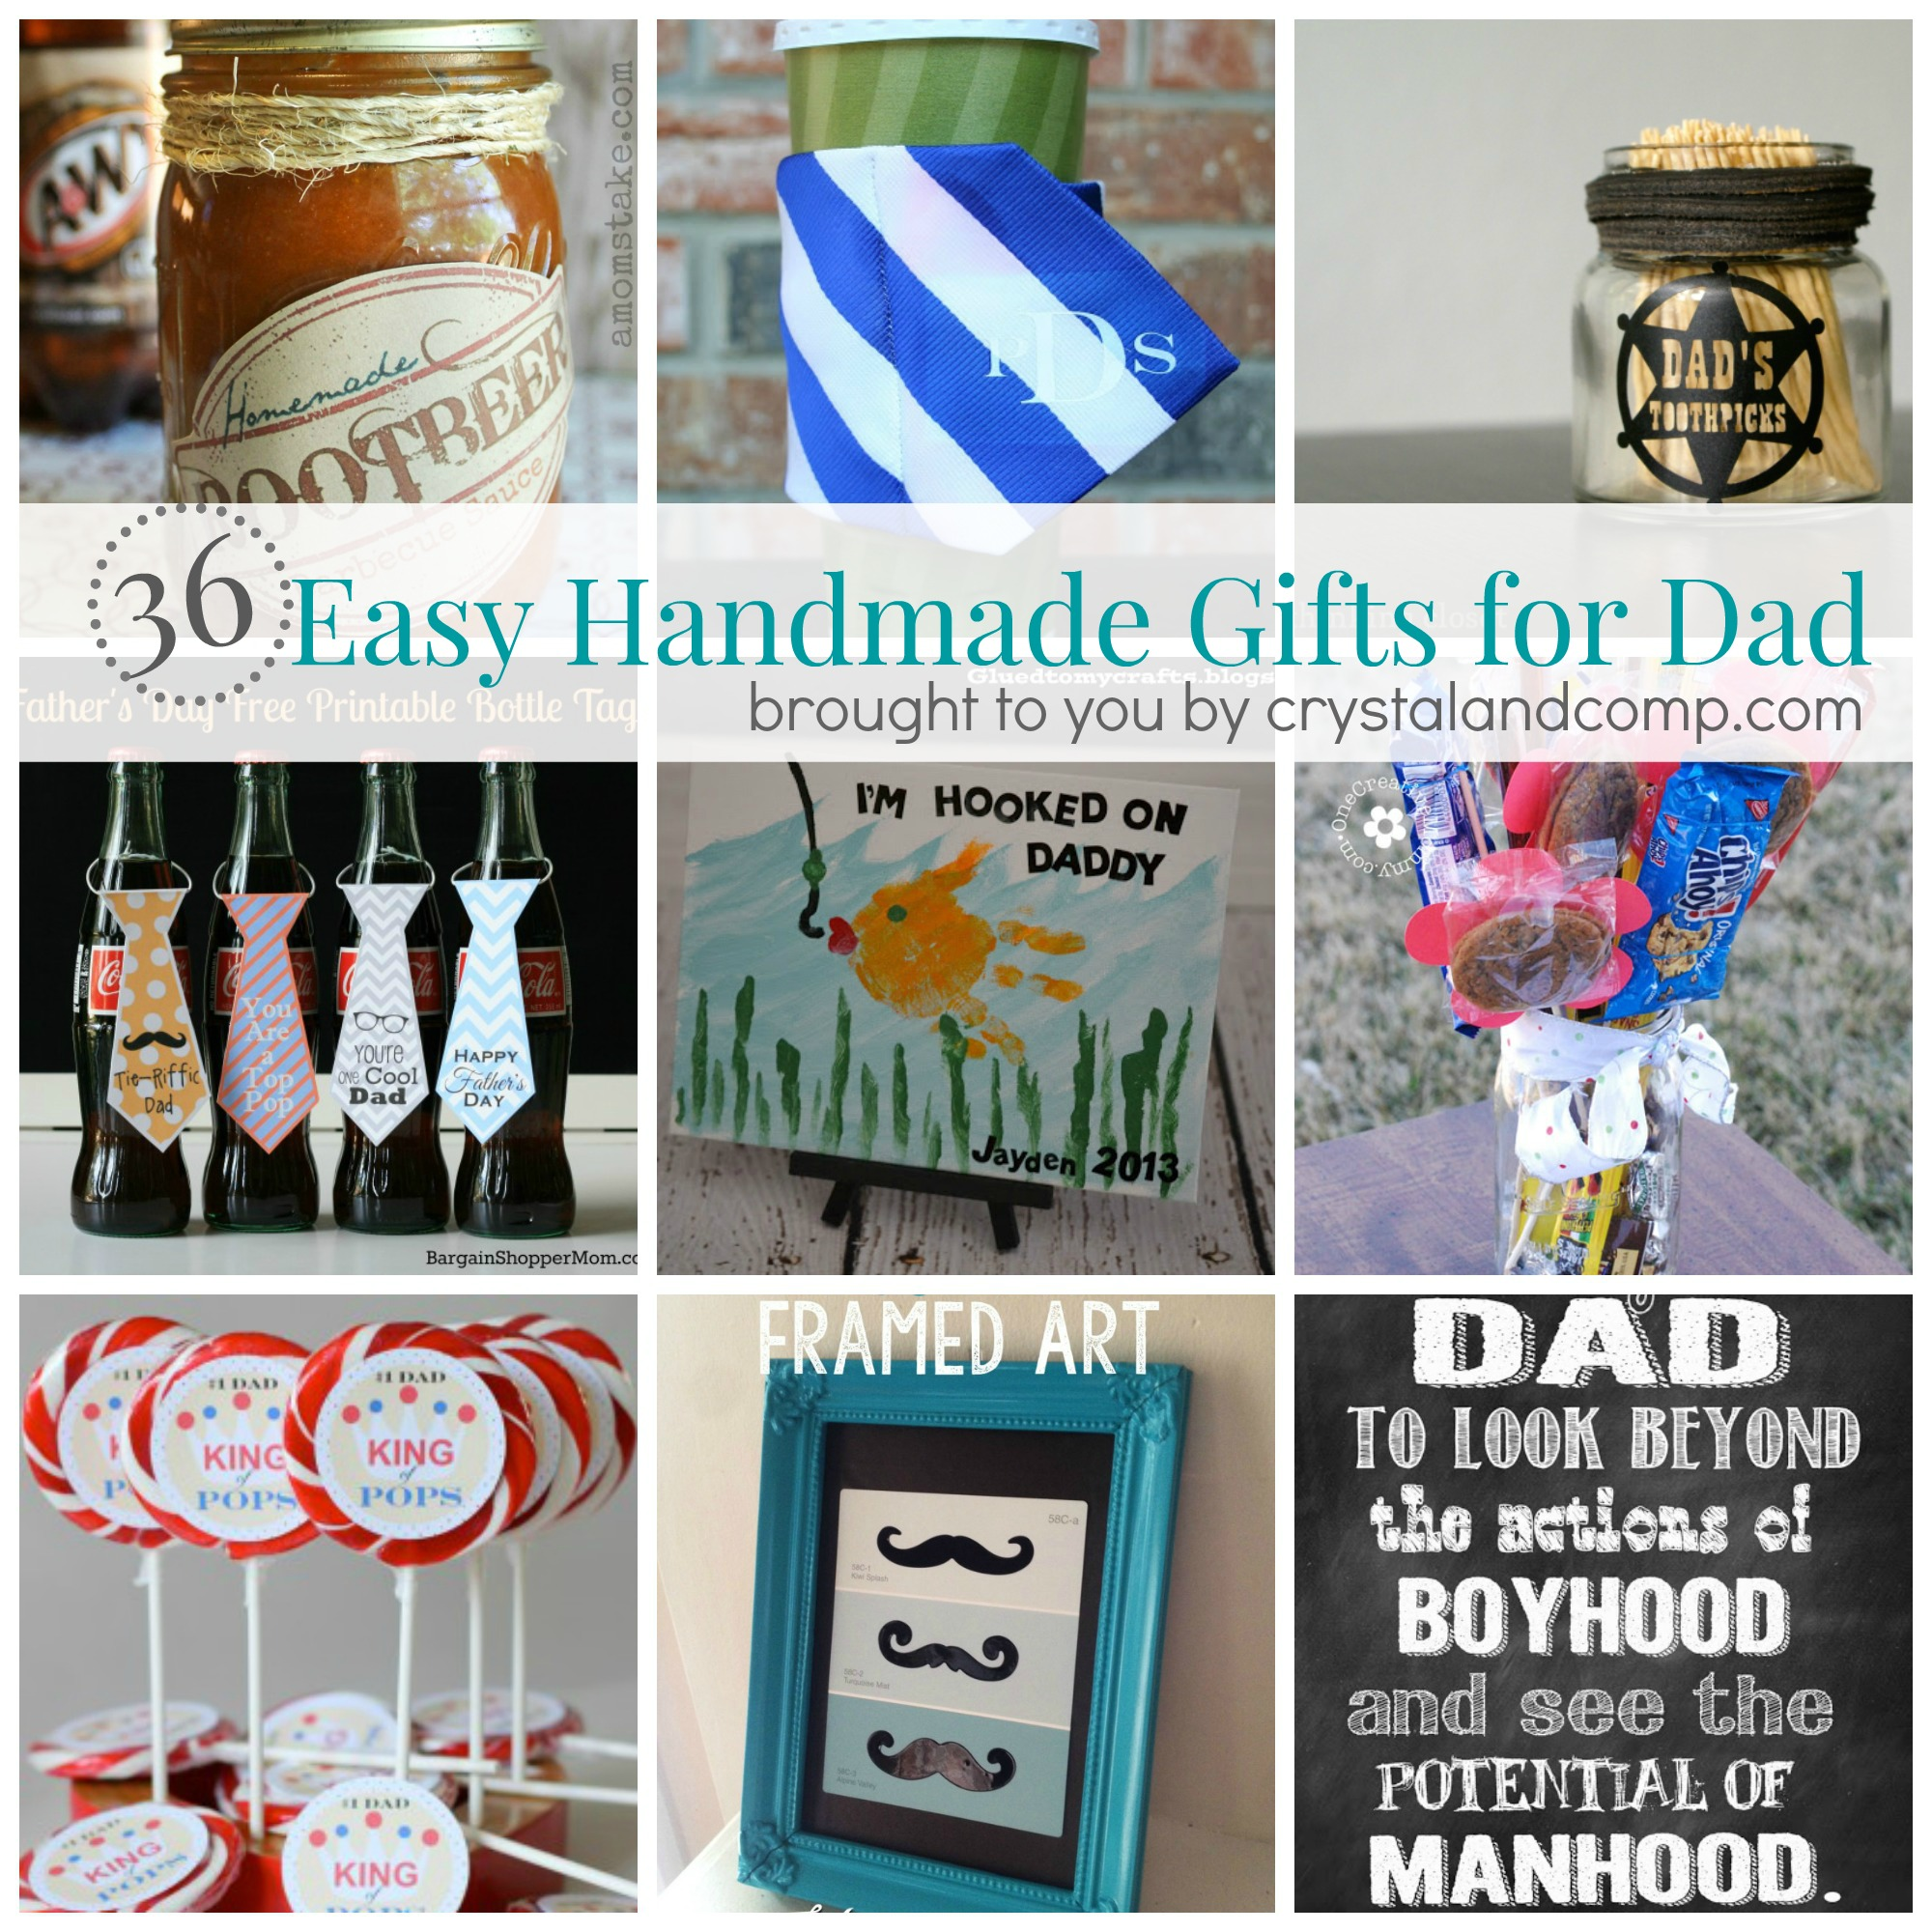 36 Easy Handmade Gift Ideas for Dad | CrystalandComp.com